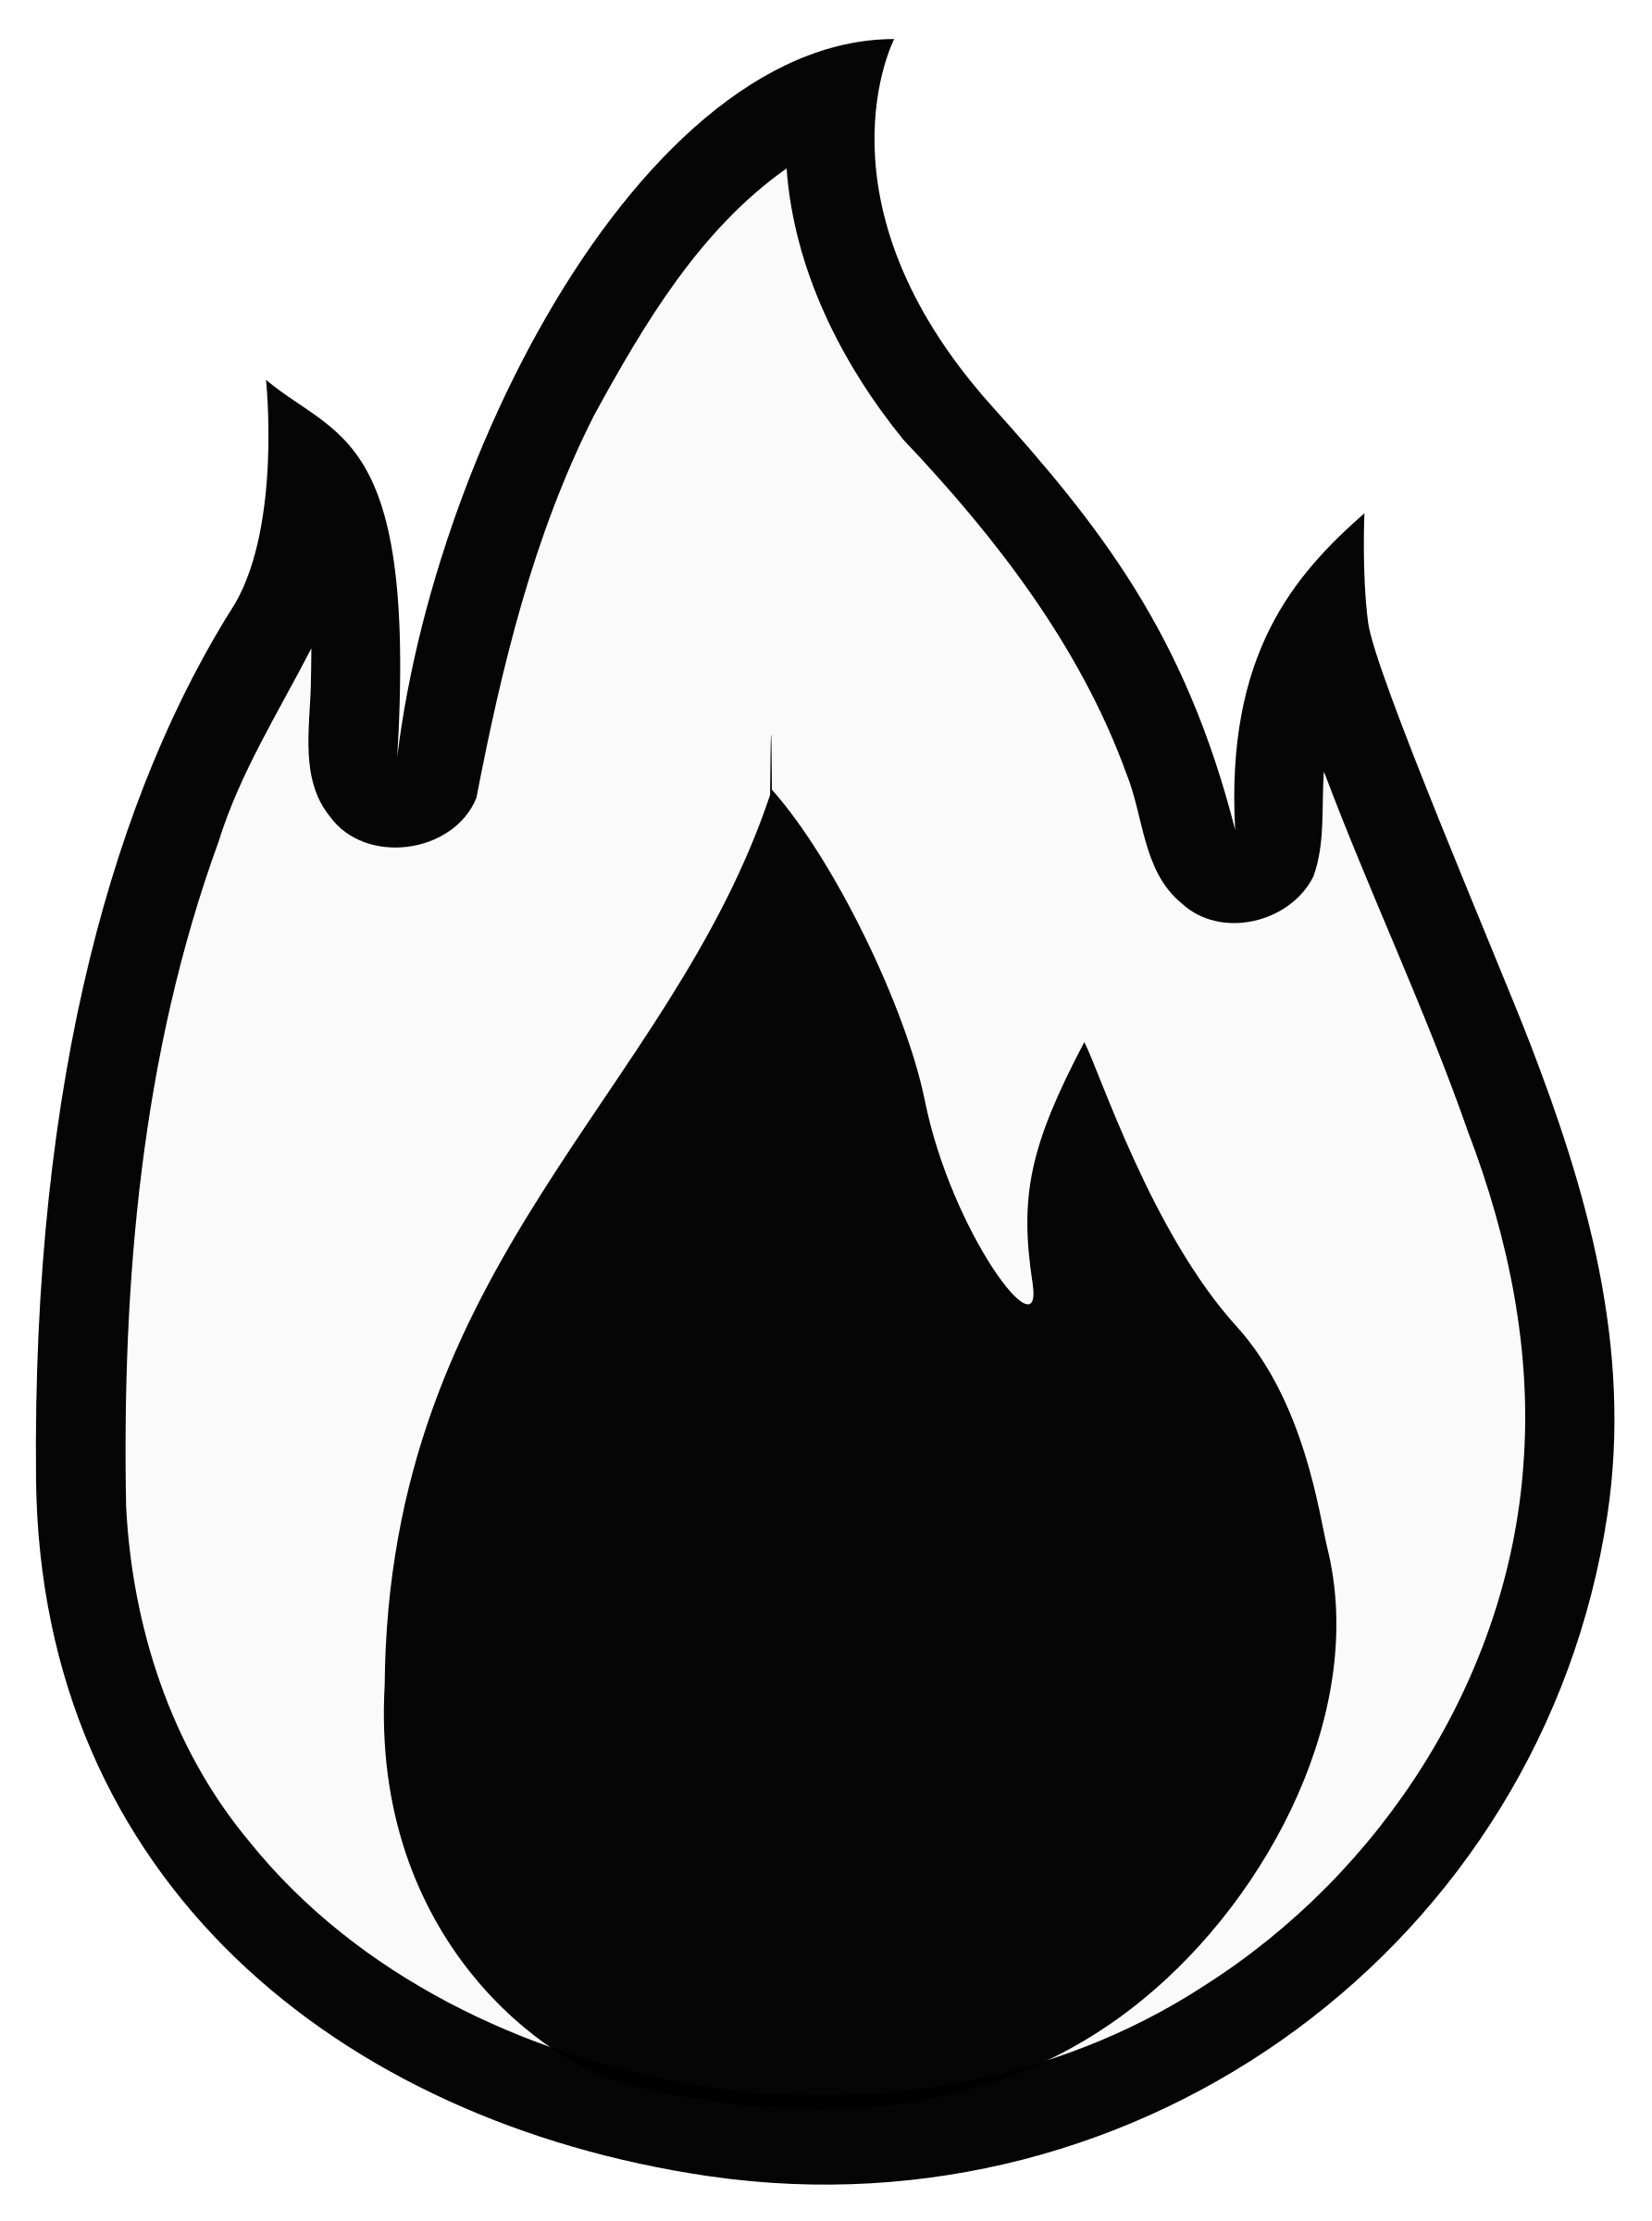 Monochrome Flame Clipart image - Free stock photo - Public ...